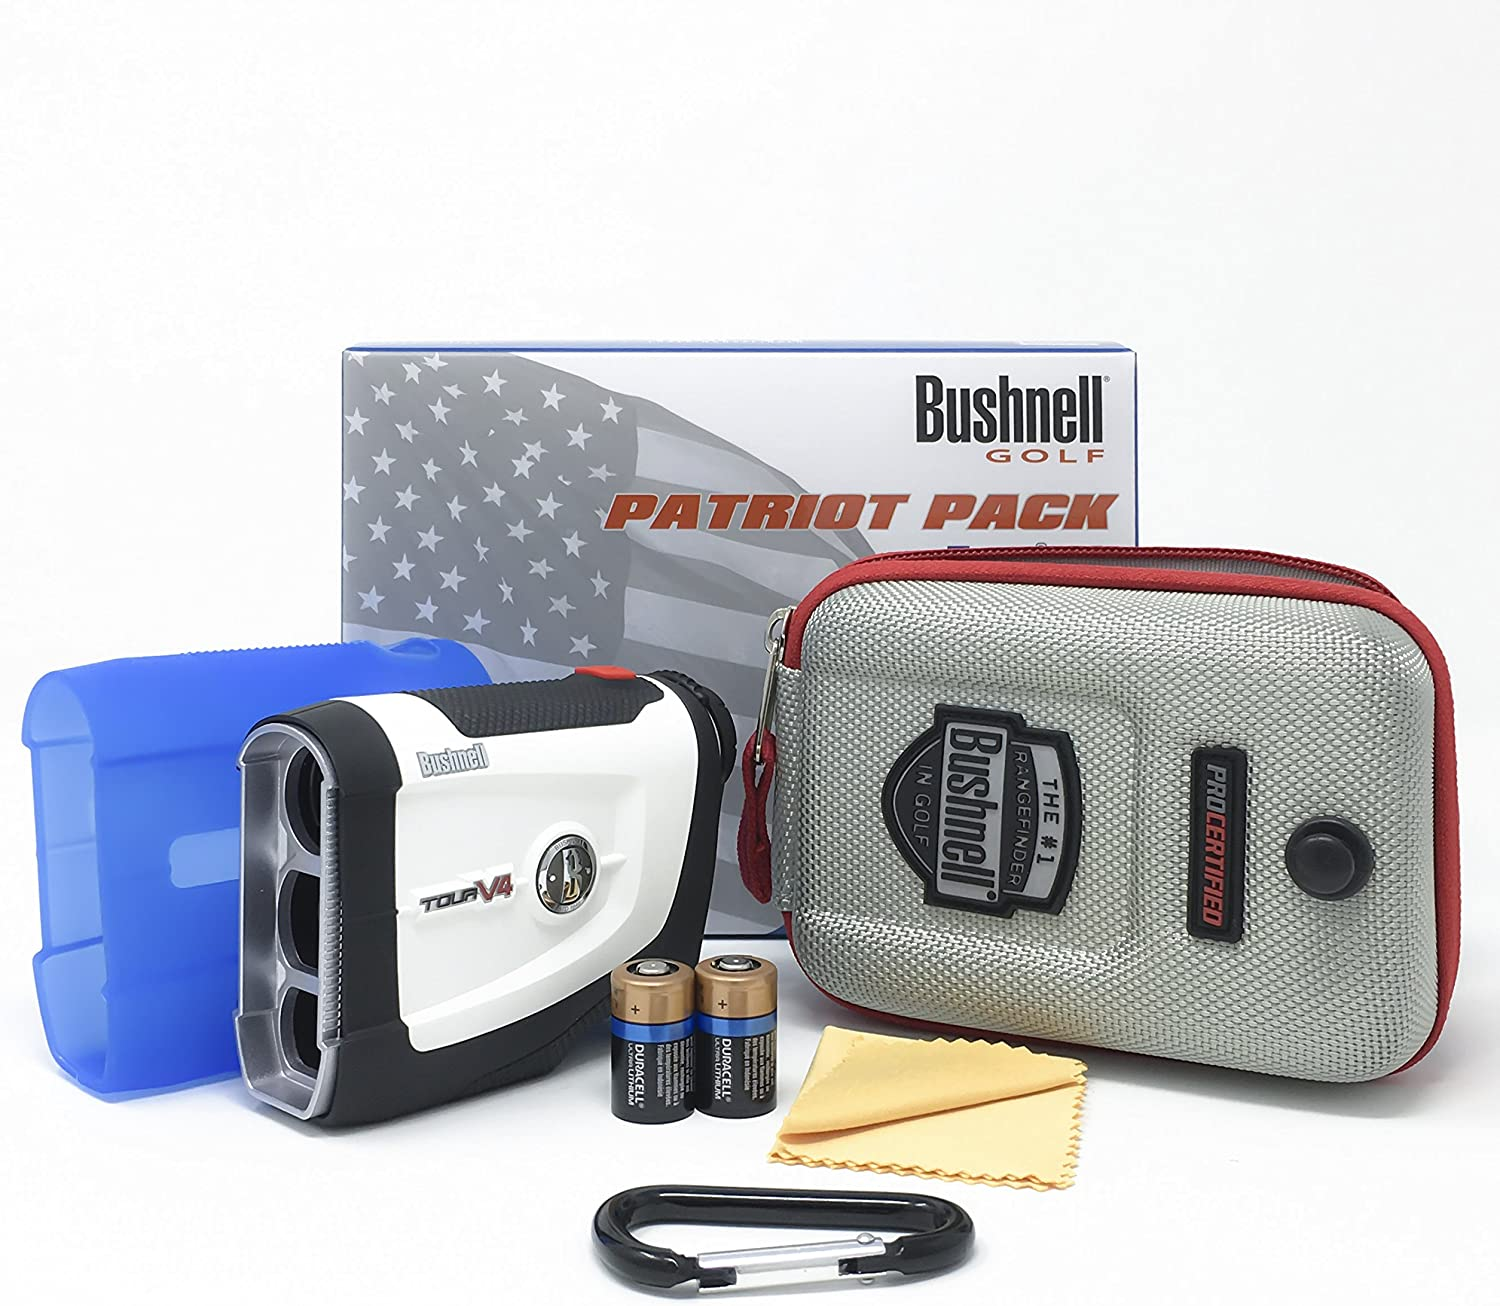 Bushnell Tour V4 Patriot Pack Laser Golf Rangefinder 201660P Bundle with Carrying Case, Carabiner, Lens Cloth, and Two 2 CR2 Batteries